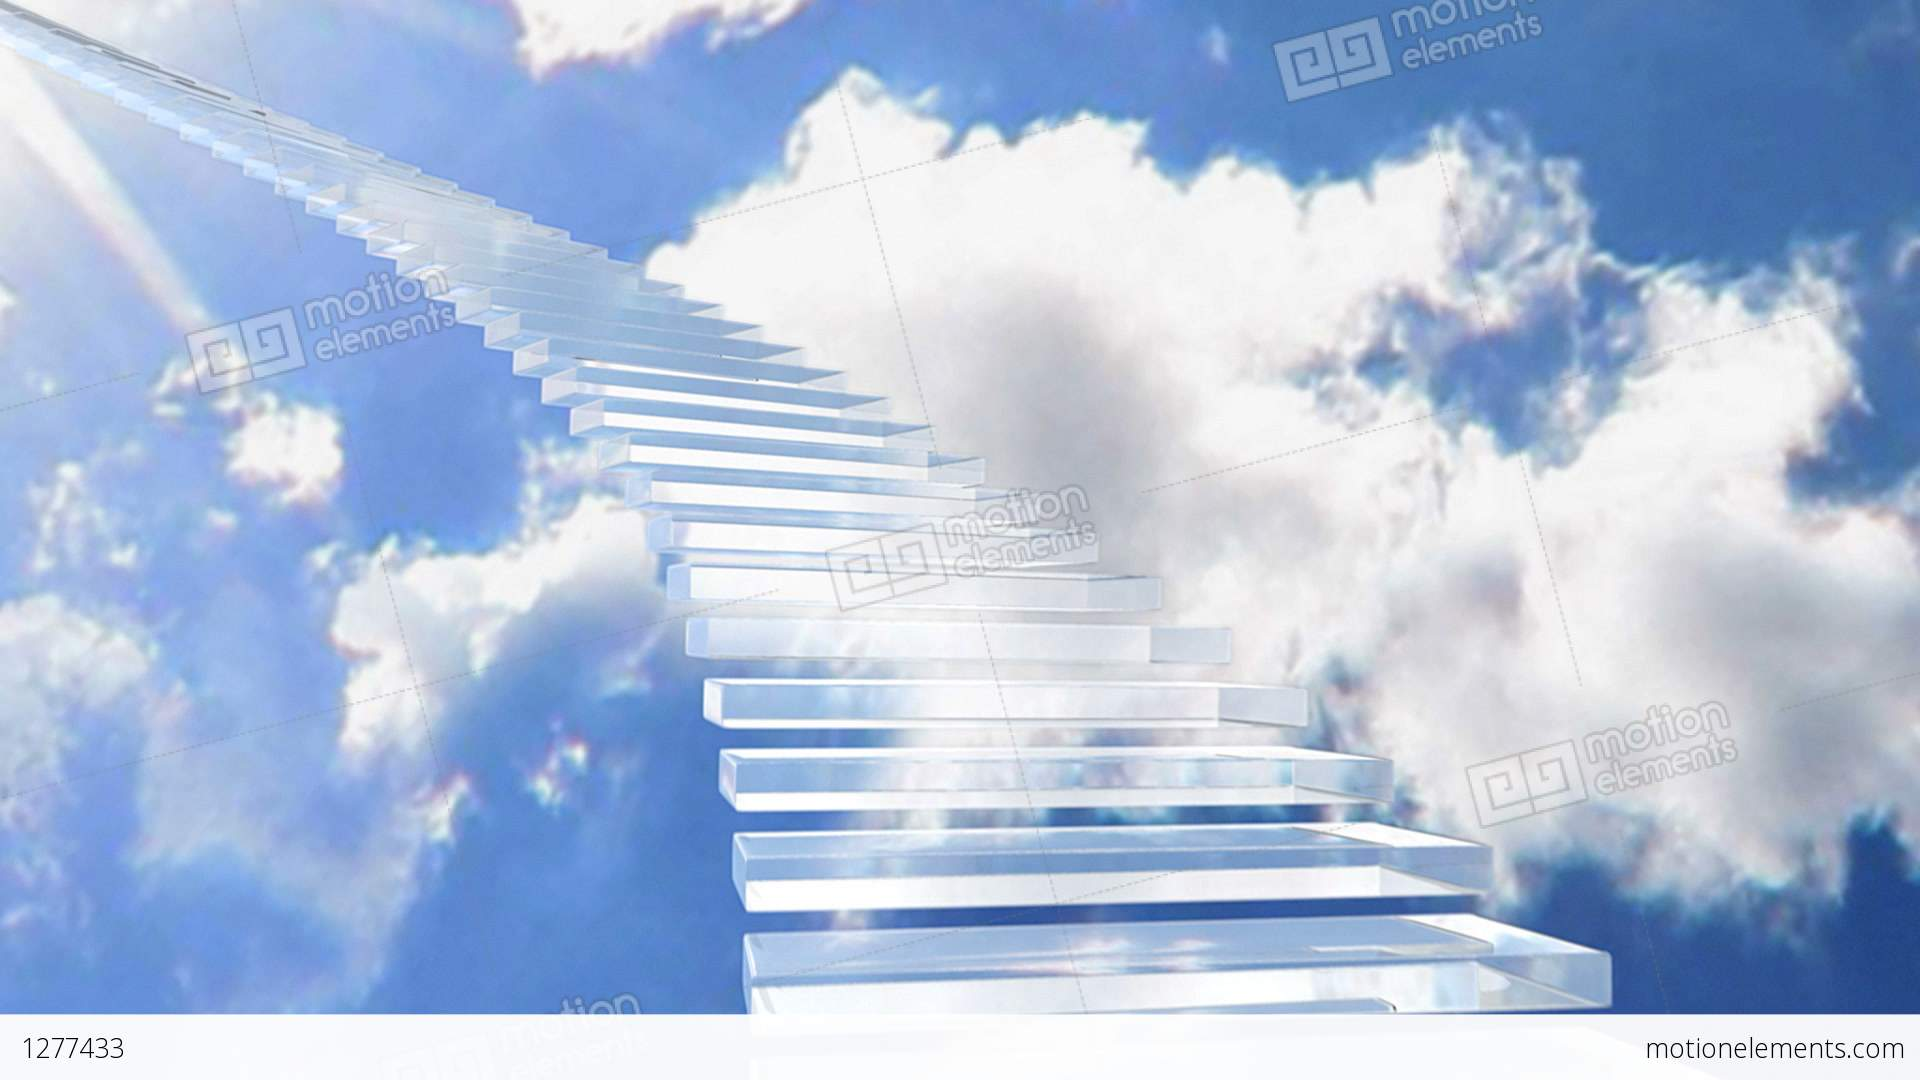 stairway to heaven analysis Stairway to heaven essaysthe song i chose for analysis is stairway to heaven by led zeppelin i have looked over the lyrics of the songs and come to the conclusion.